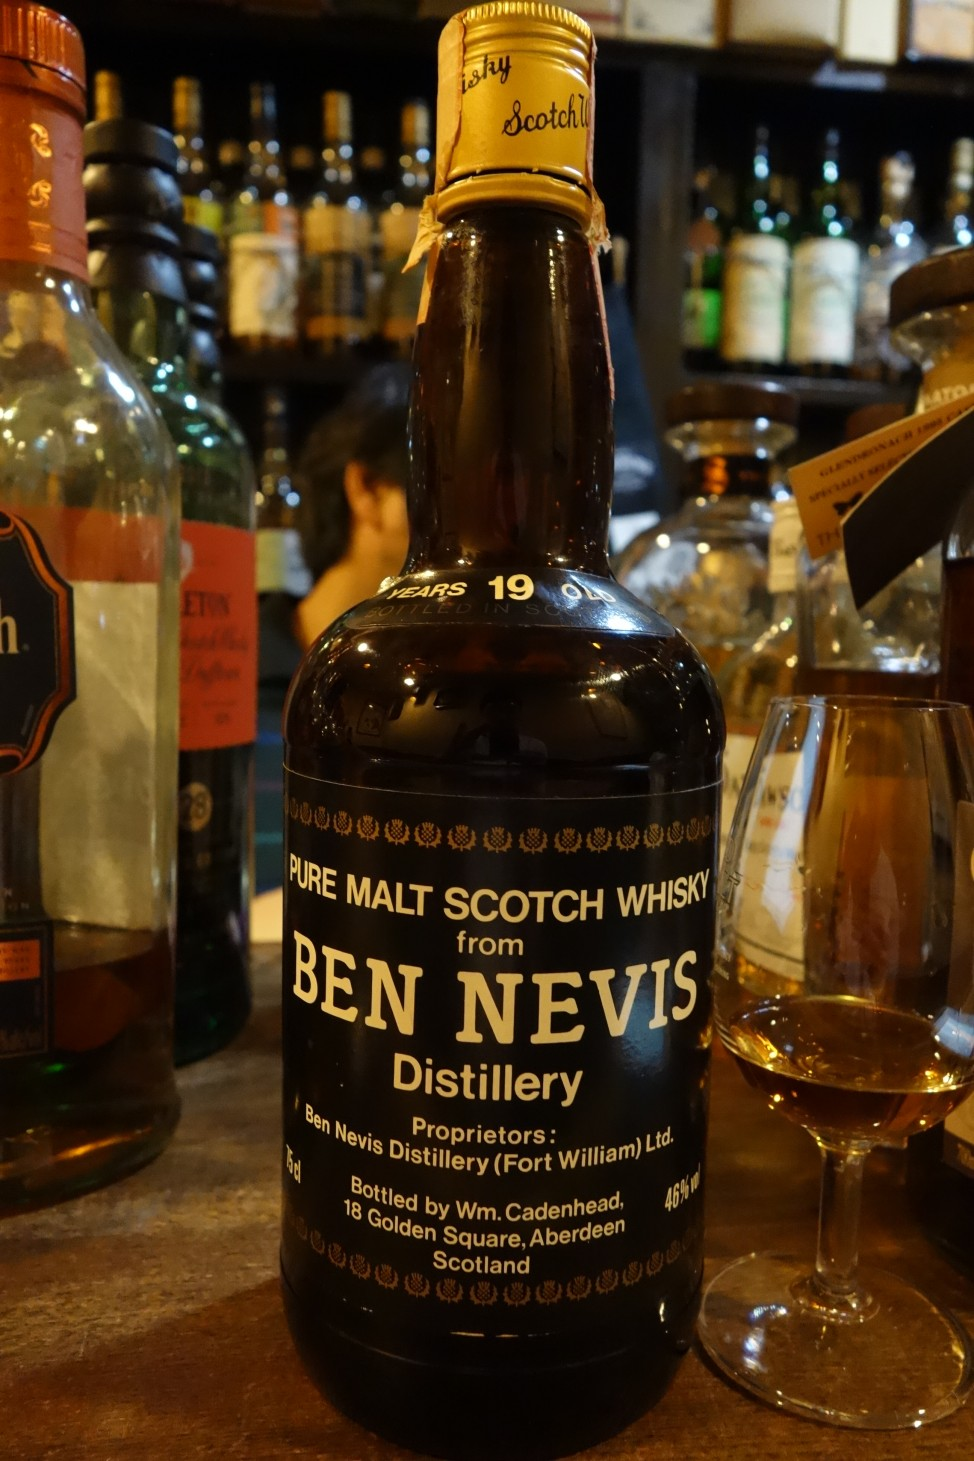 BENNEVIS 19yo CADENHEAD Black Dumpy Bottle